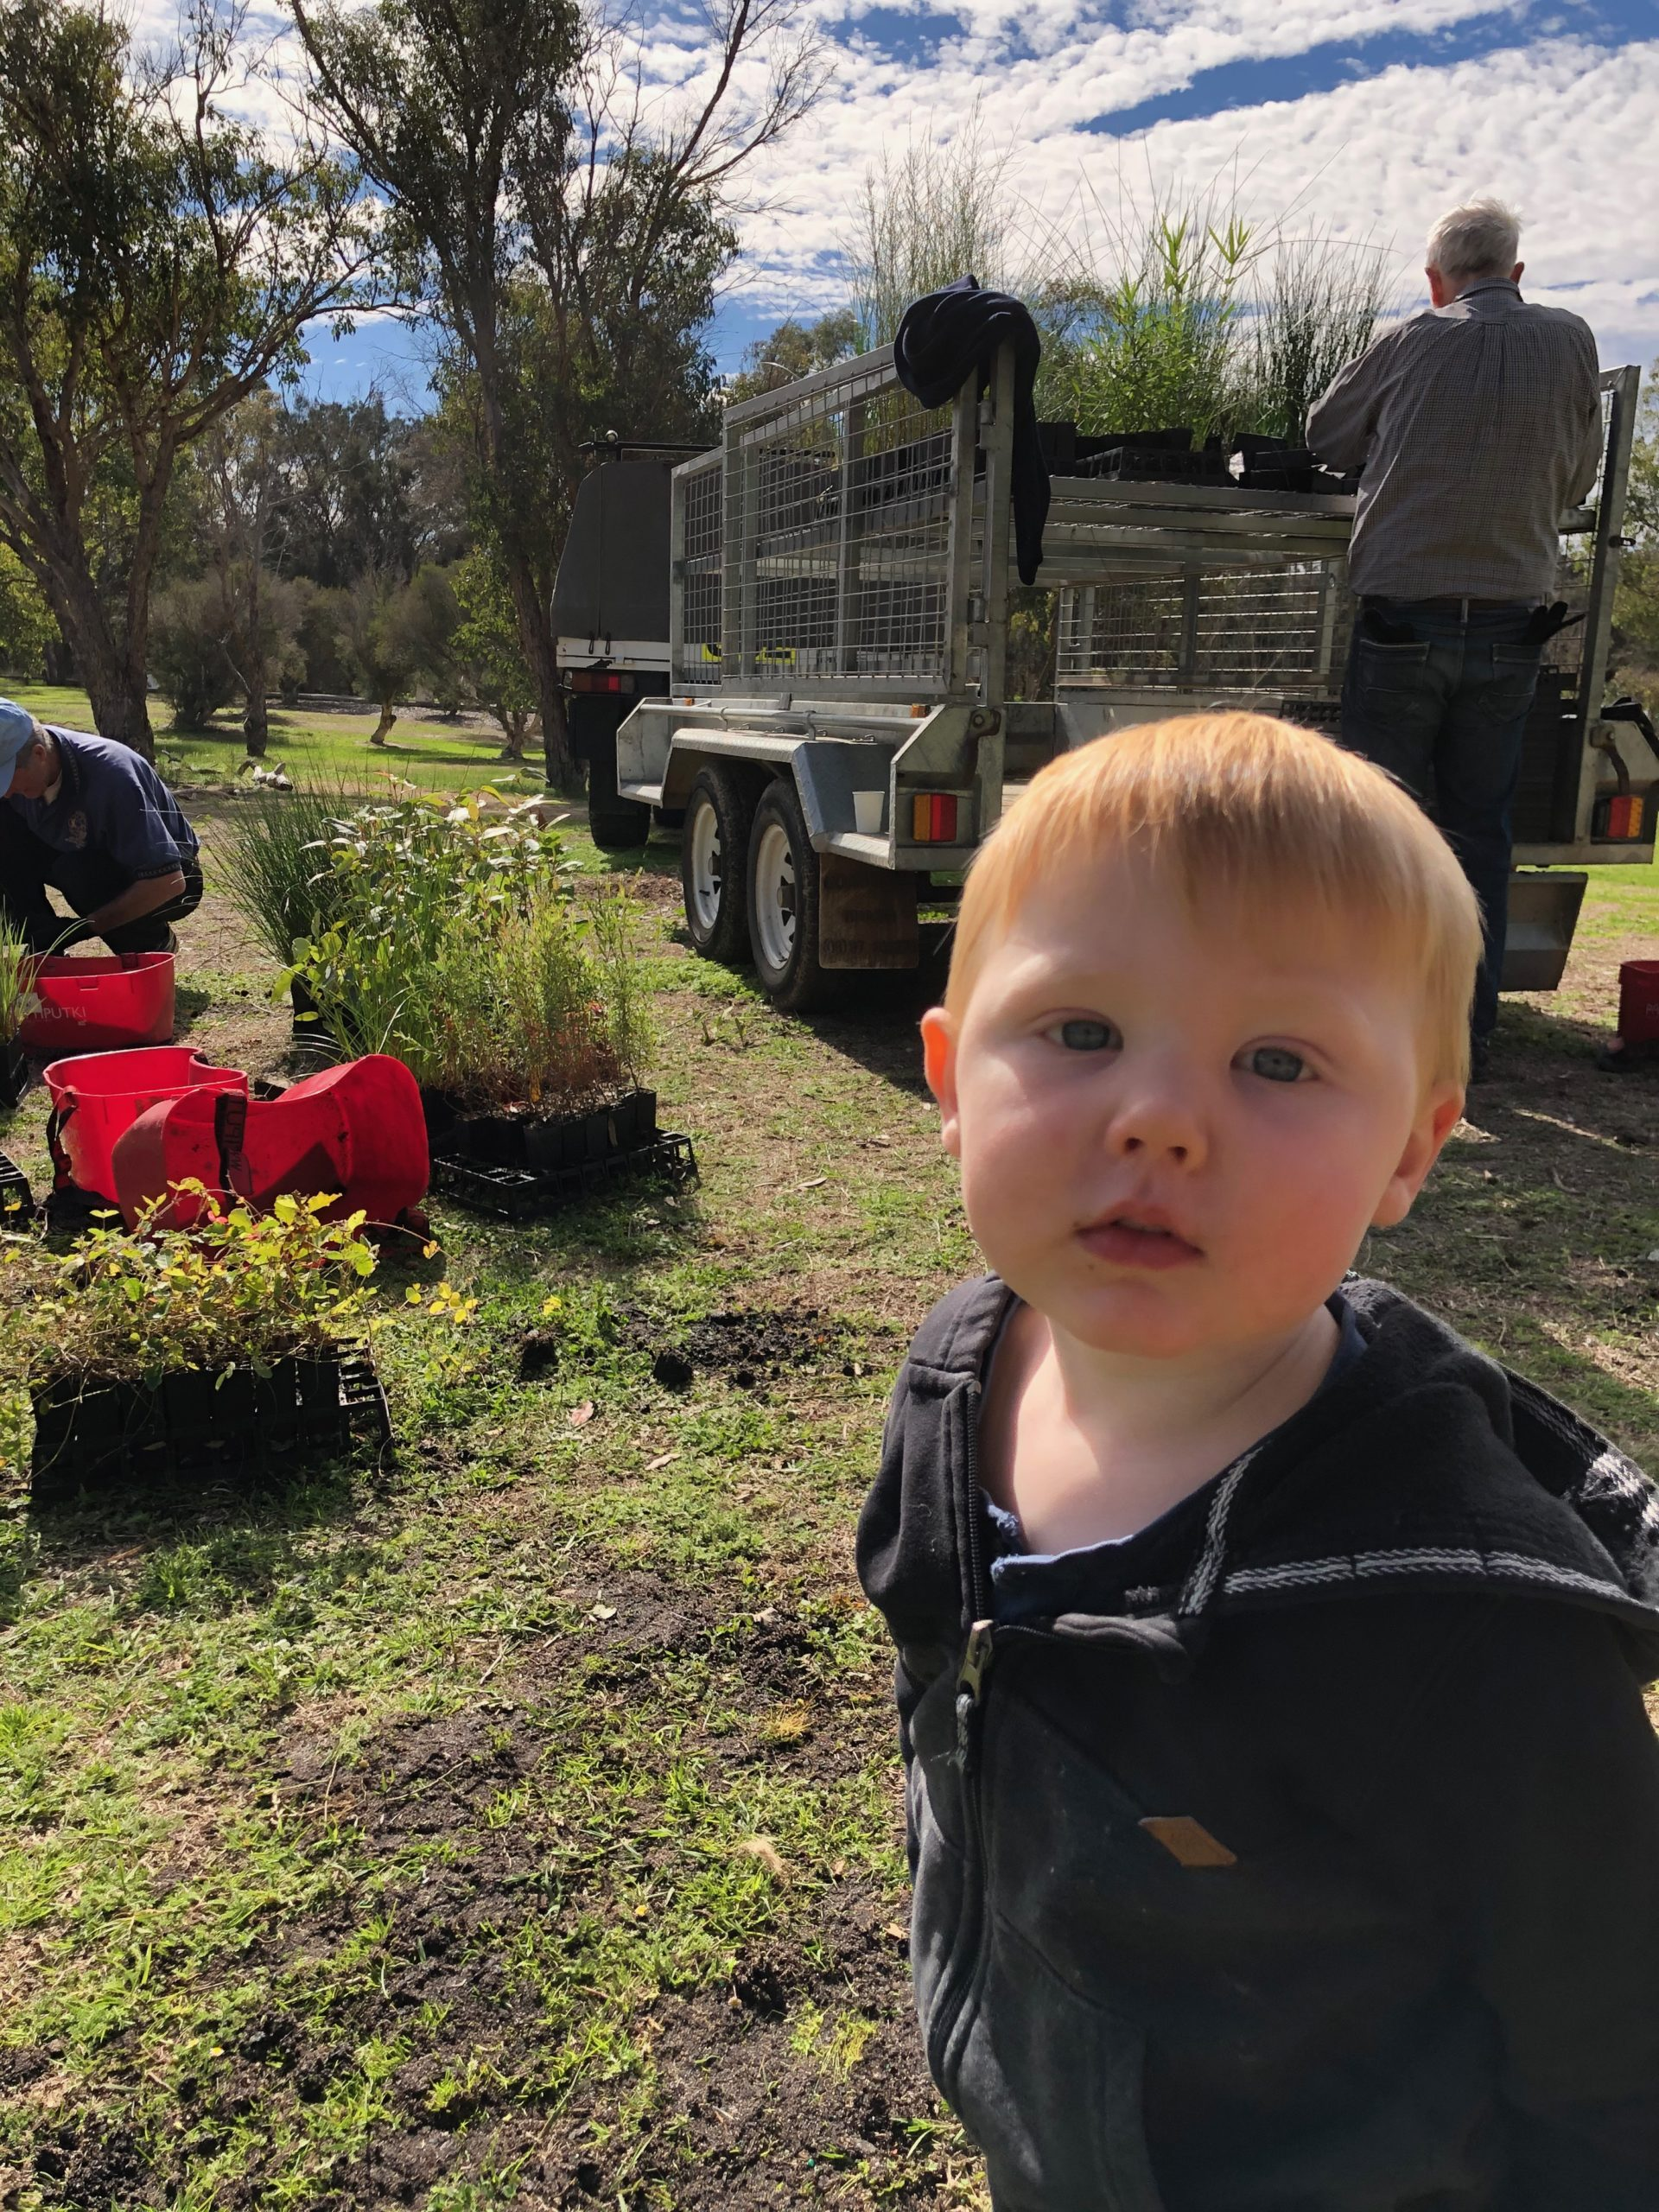 A young boy is looking at the camera with seedlings behind him